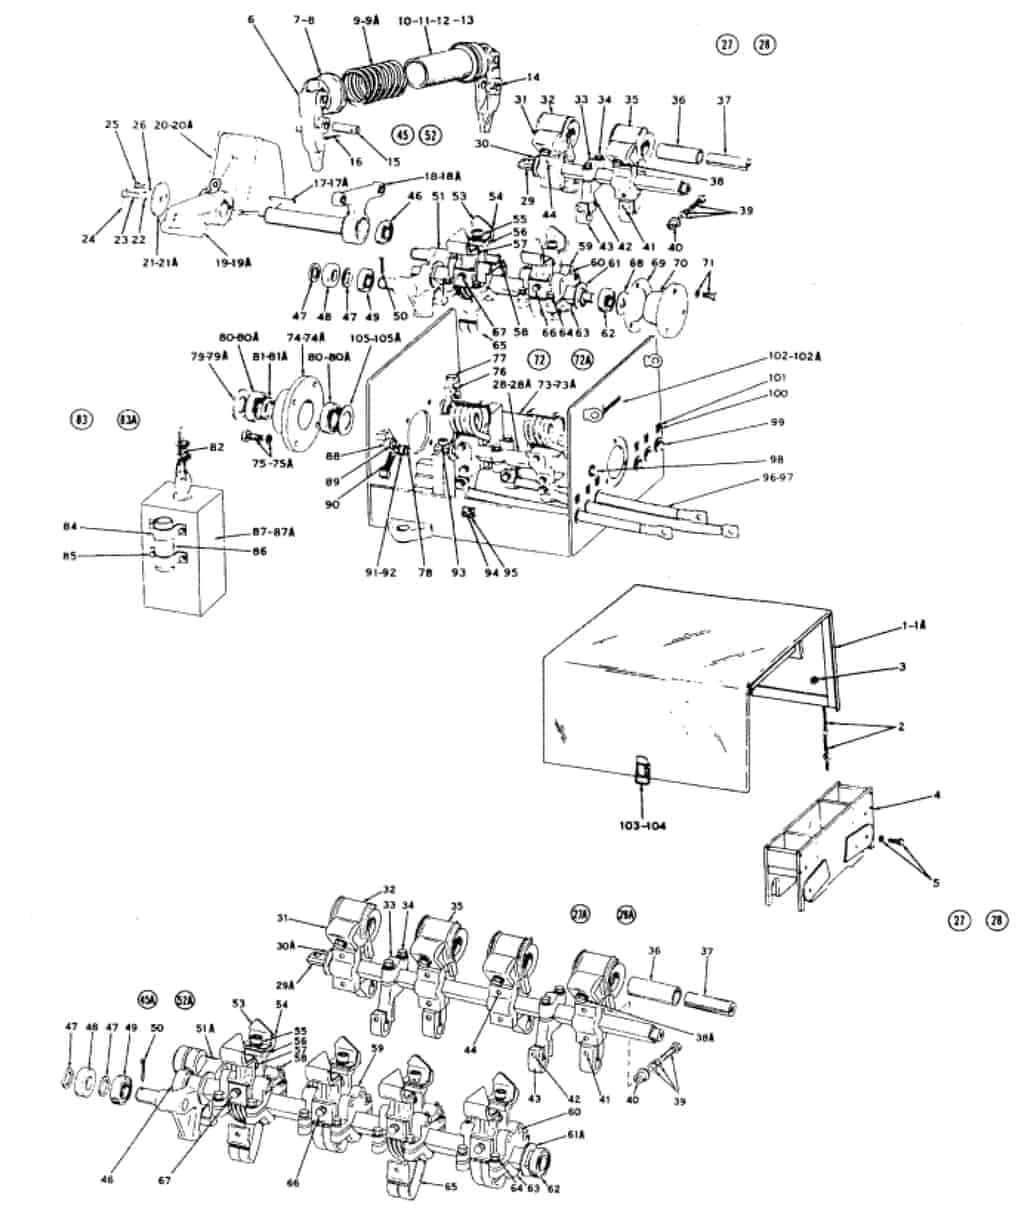 No 30 Youngstown Limit Switch Type Ddg Series A